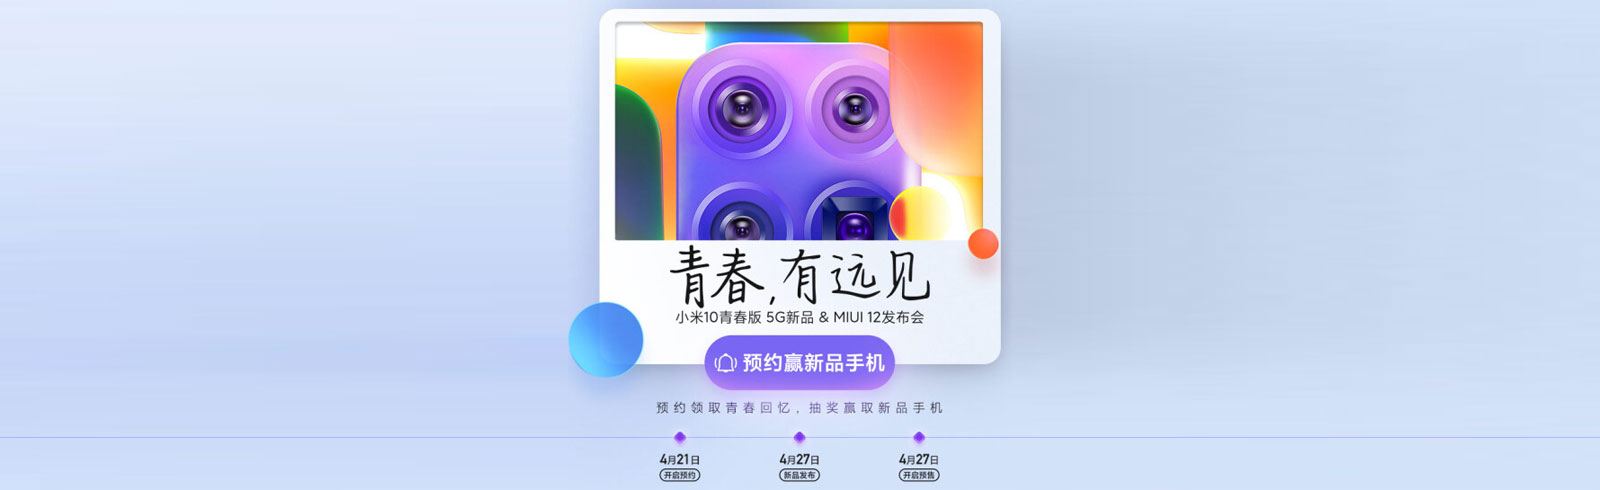 Xiaomi Mi 10 SE/Mi 10 Youth Edition will be announced on April 27 together with MIUI 12